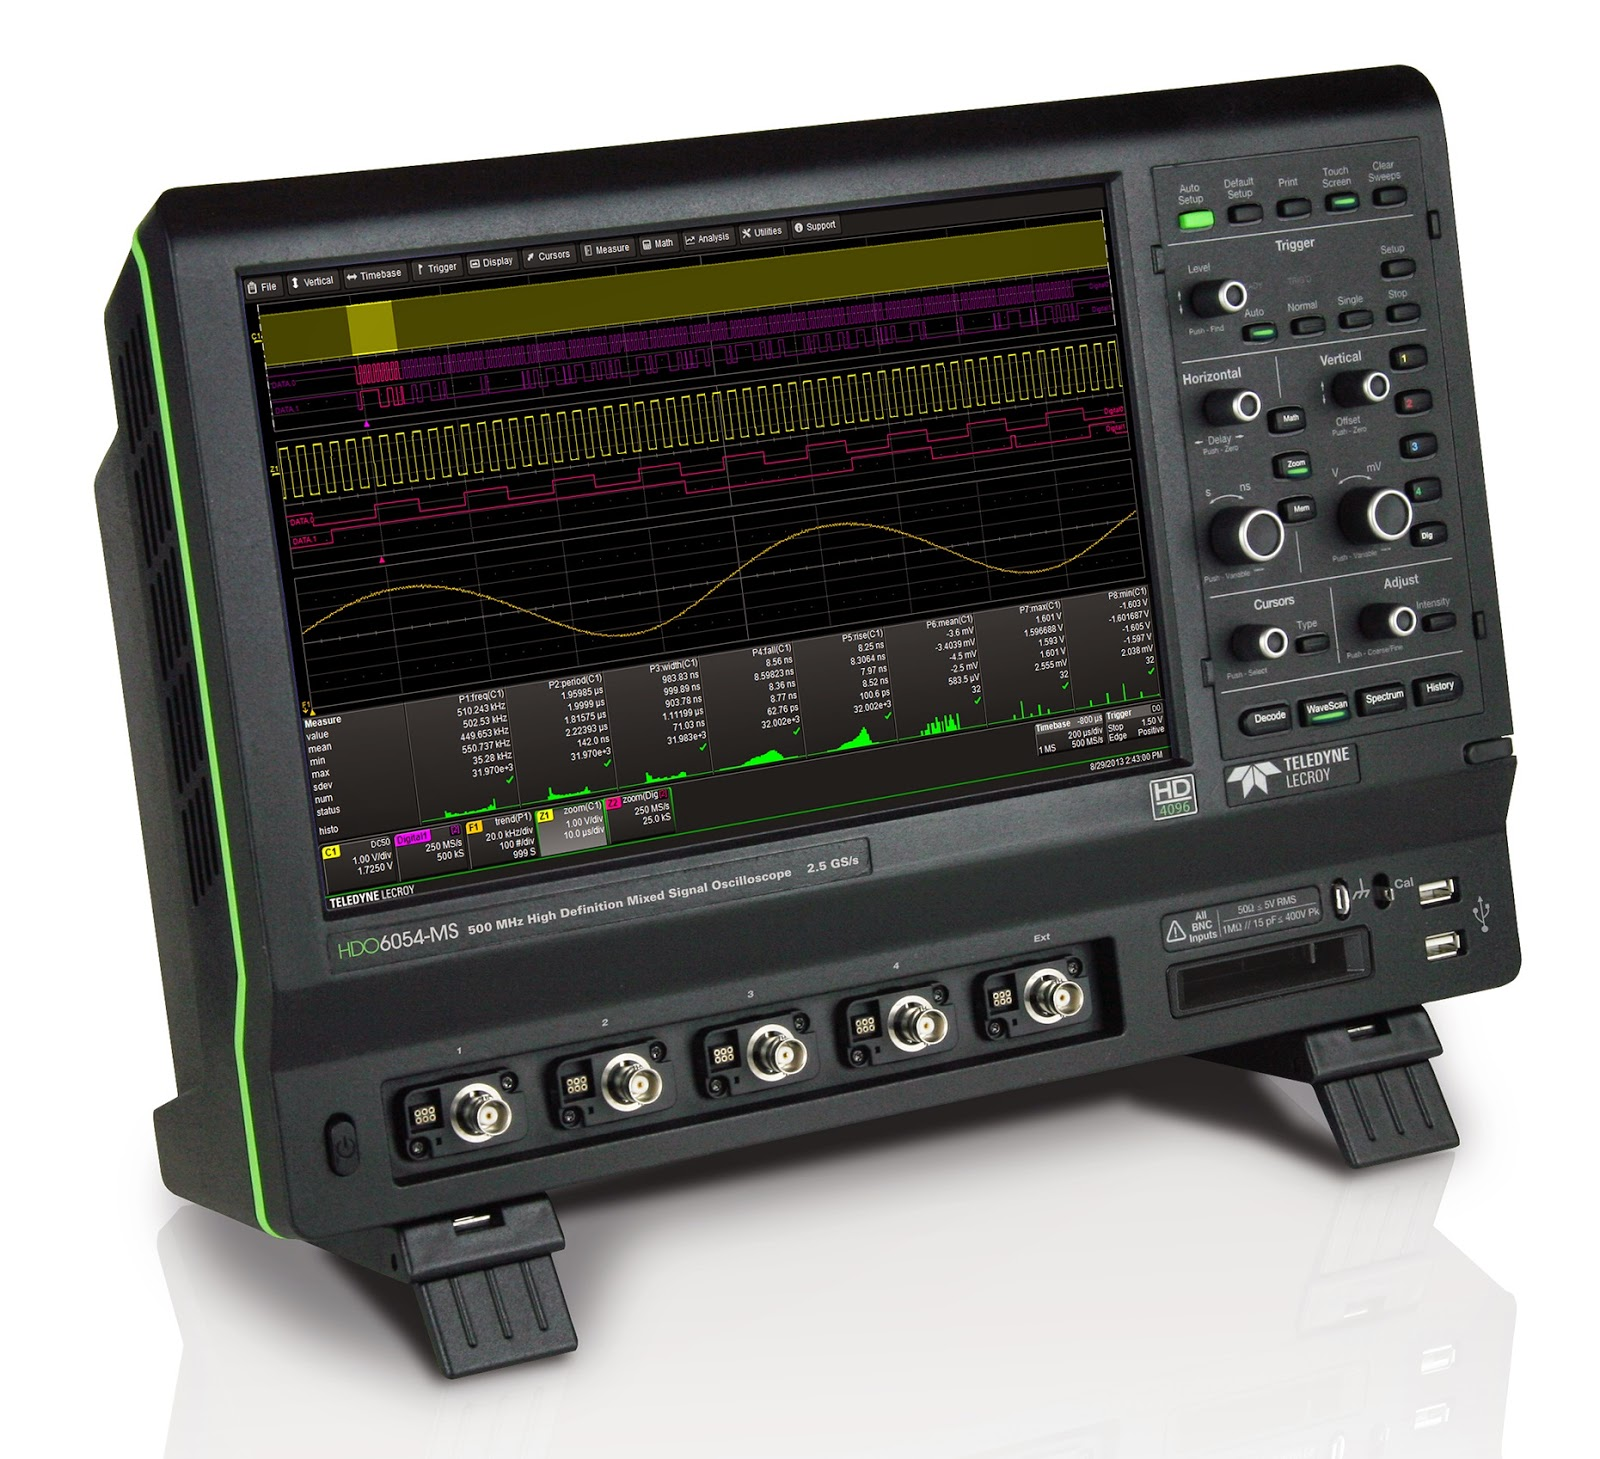 An oscilloscope such as Teledyne LeCroy's HDO6054-MS serves a very broad range of applications